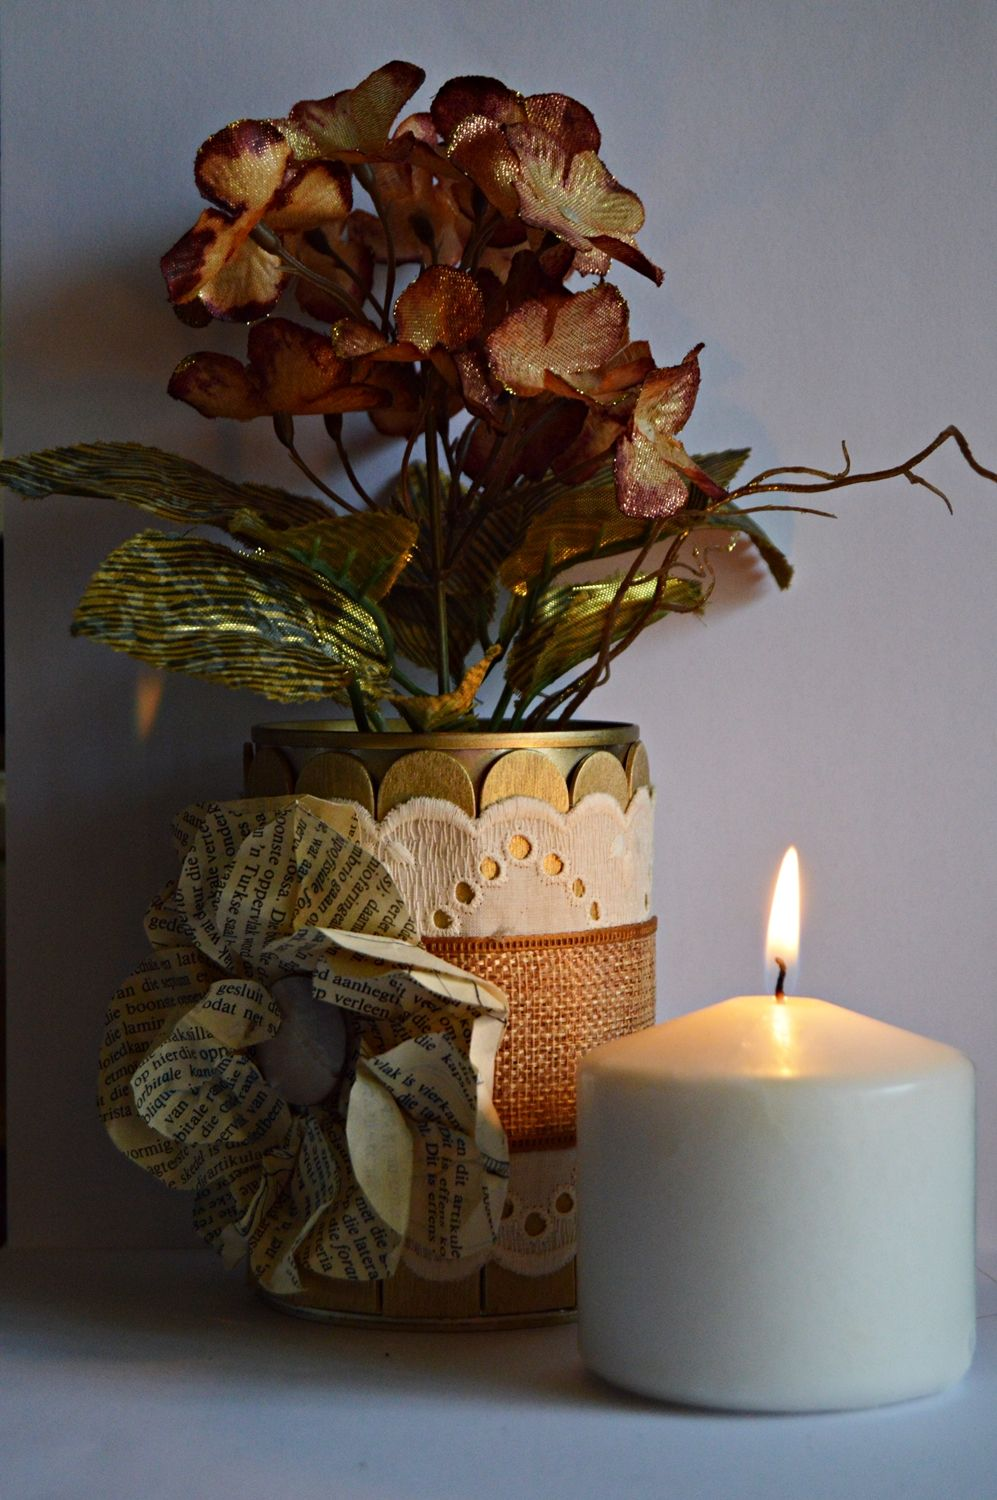 Best rustic wedding table centerpiece ideas image collection